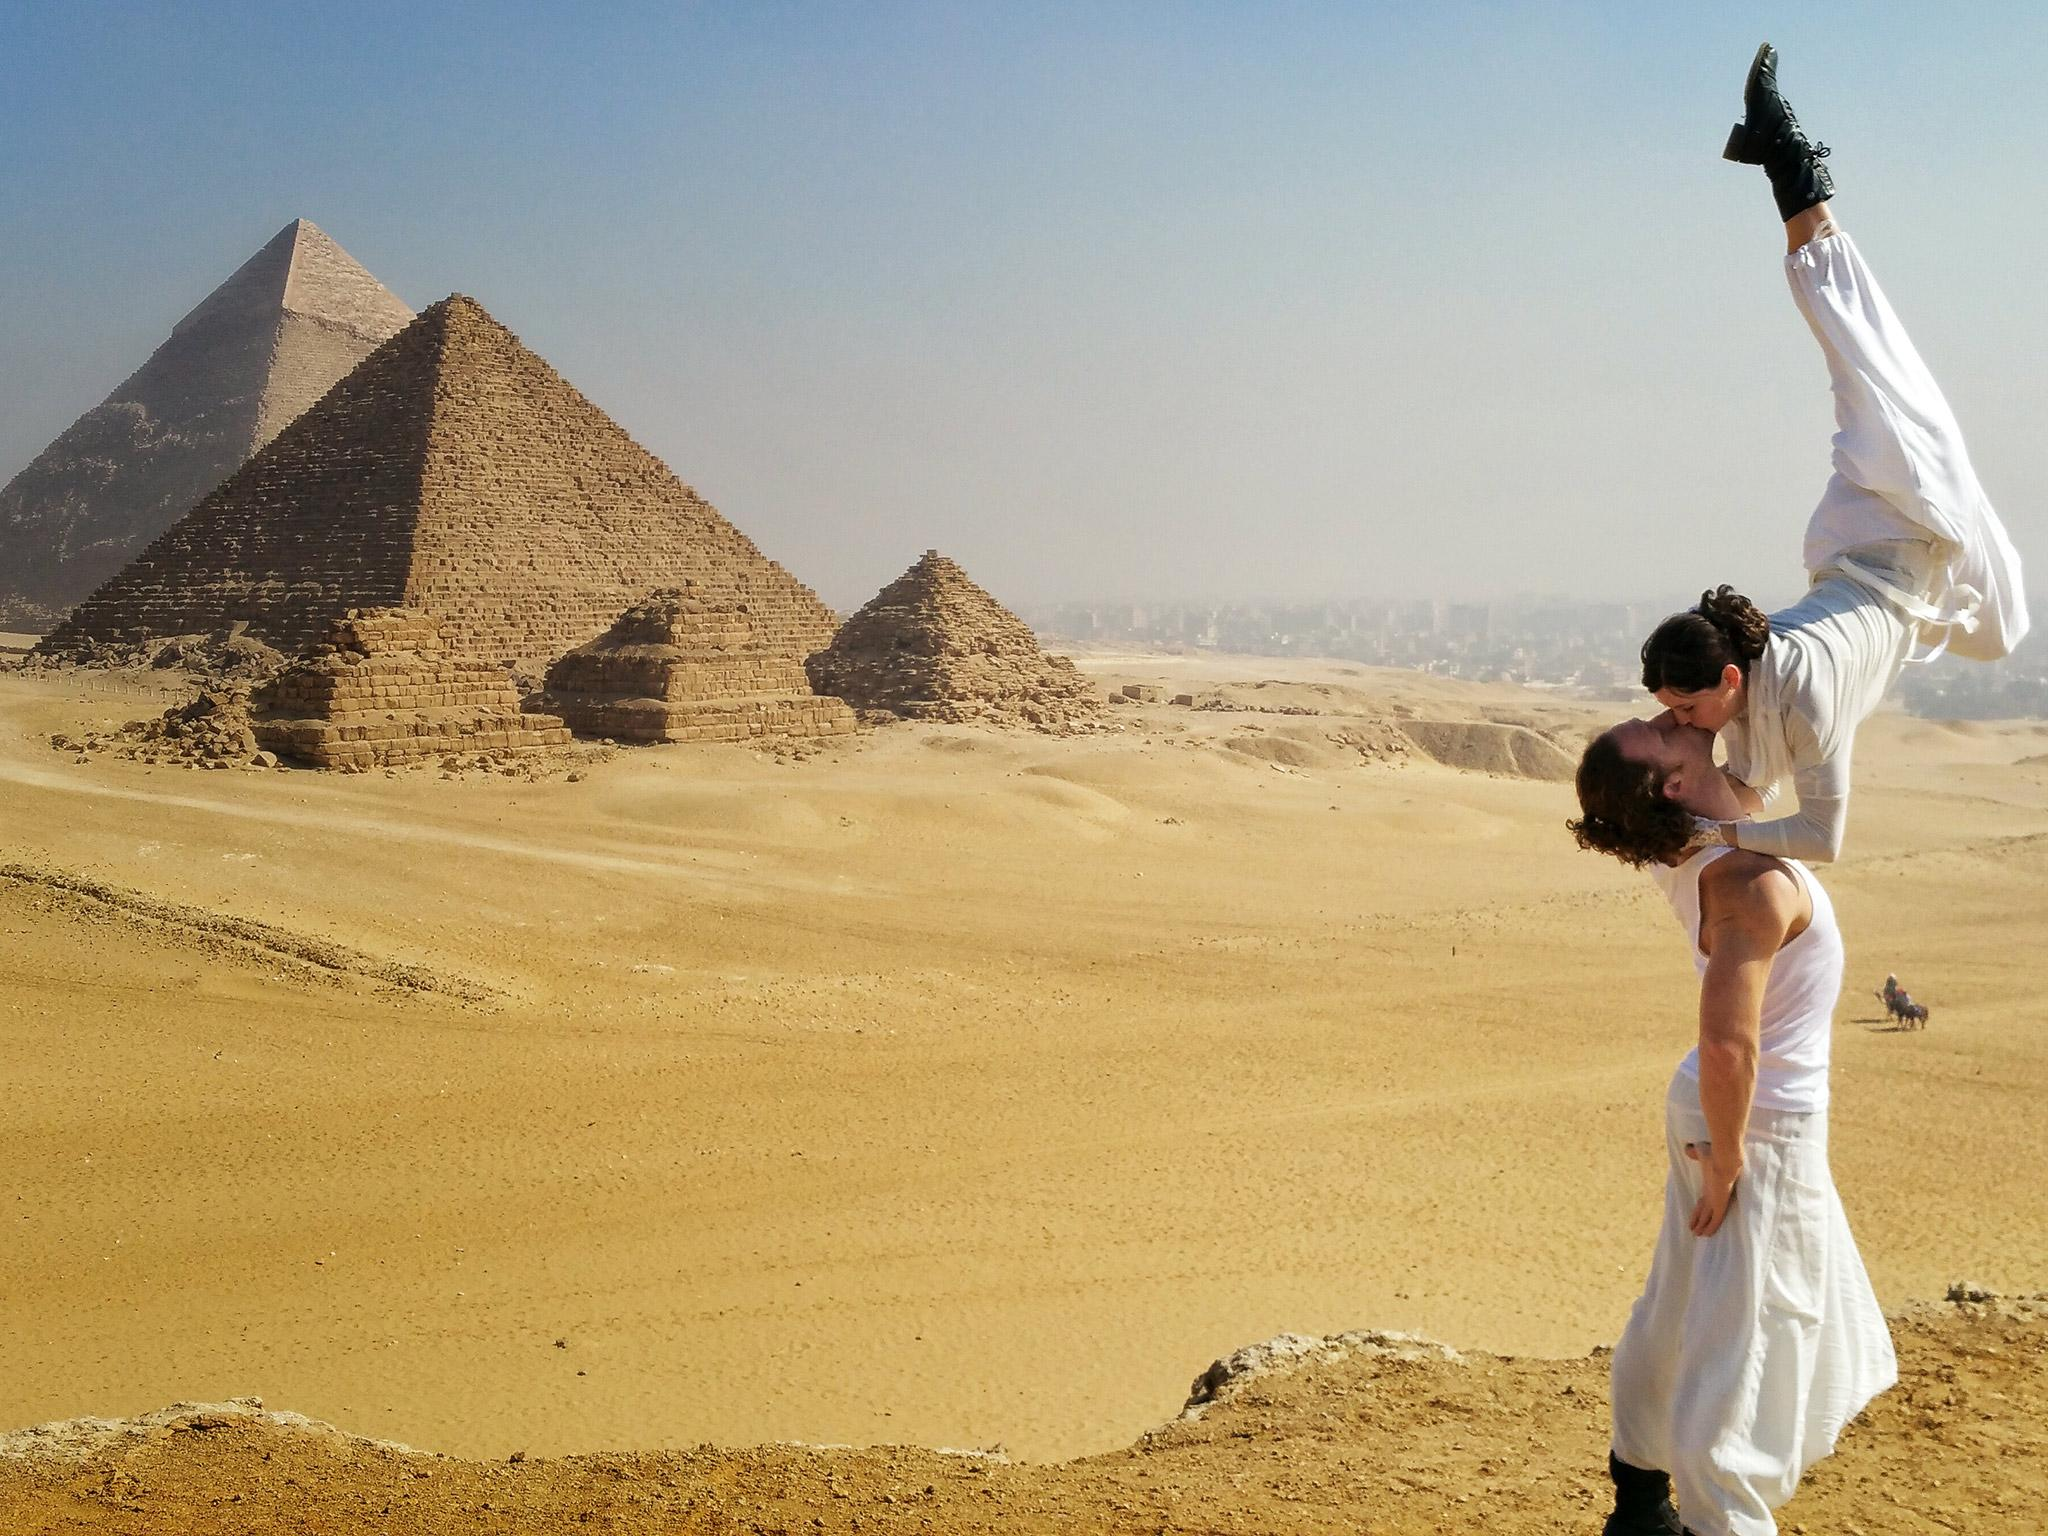 Couples are choosing to travel the world instead of expensive wedding ceremonies